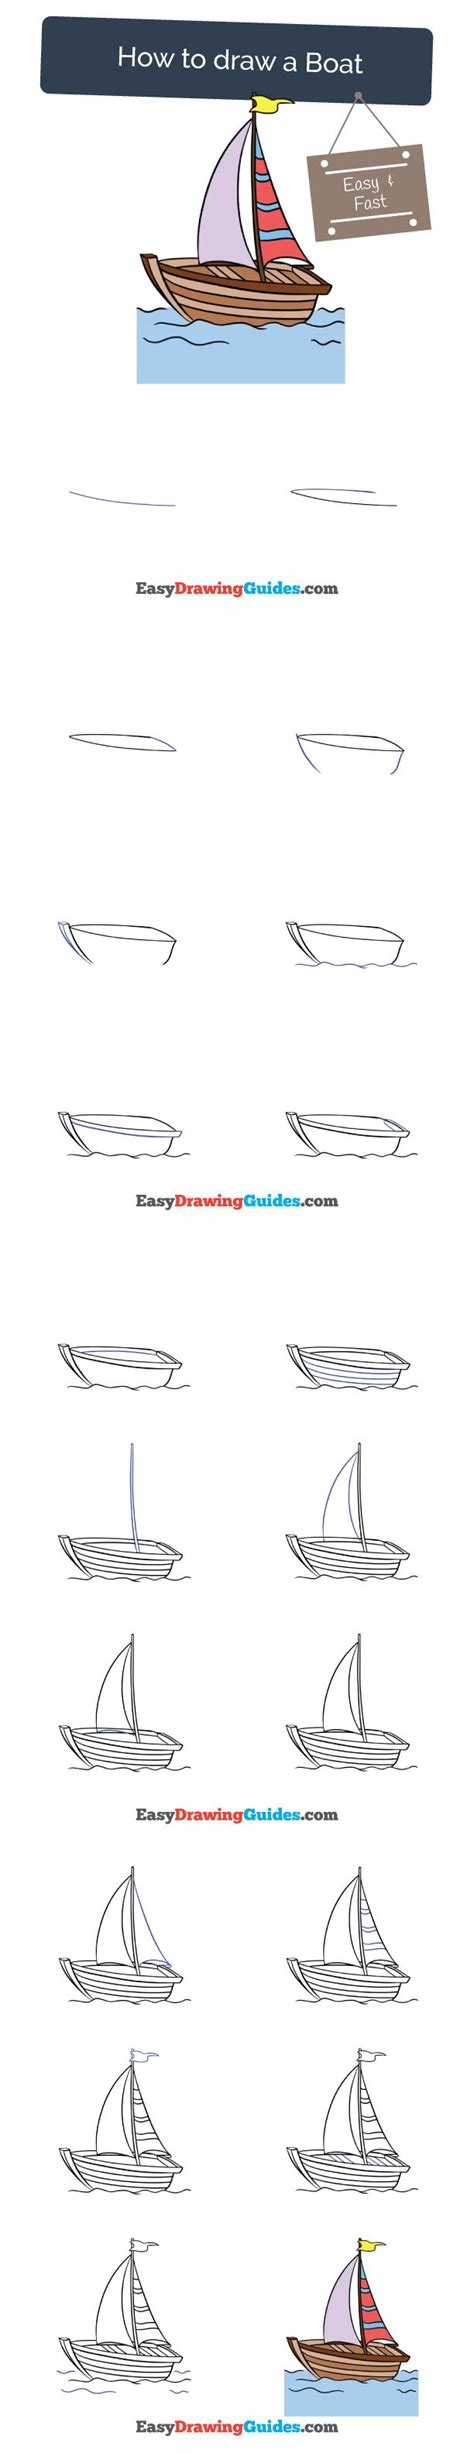 boat drawing easy step by step how to a boat in a few easy steps boating drawings and